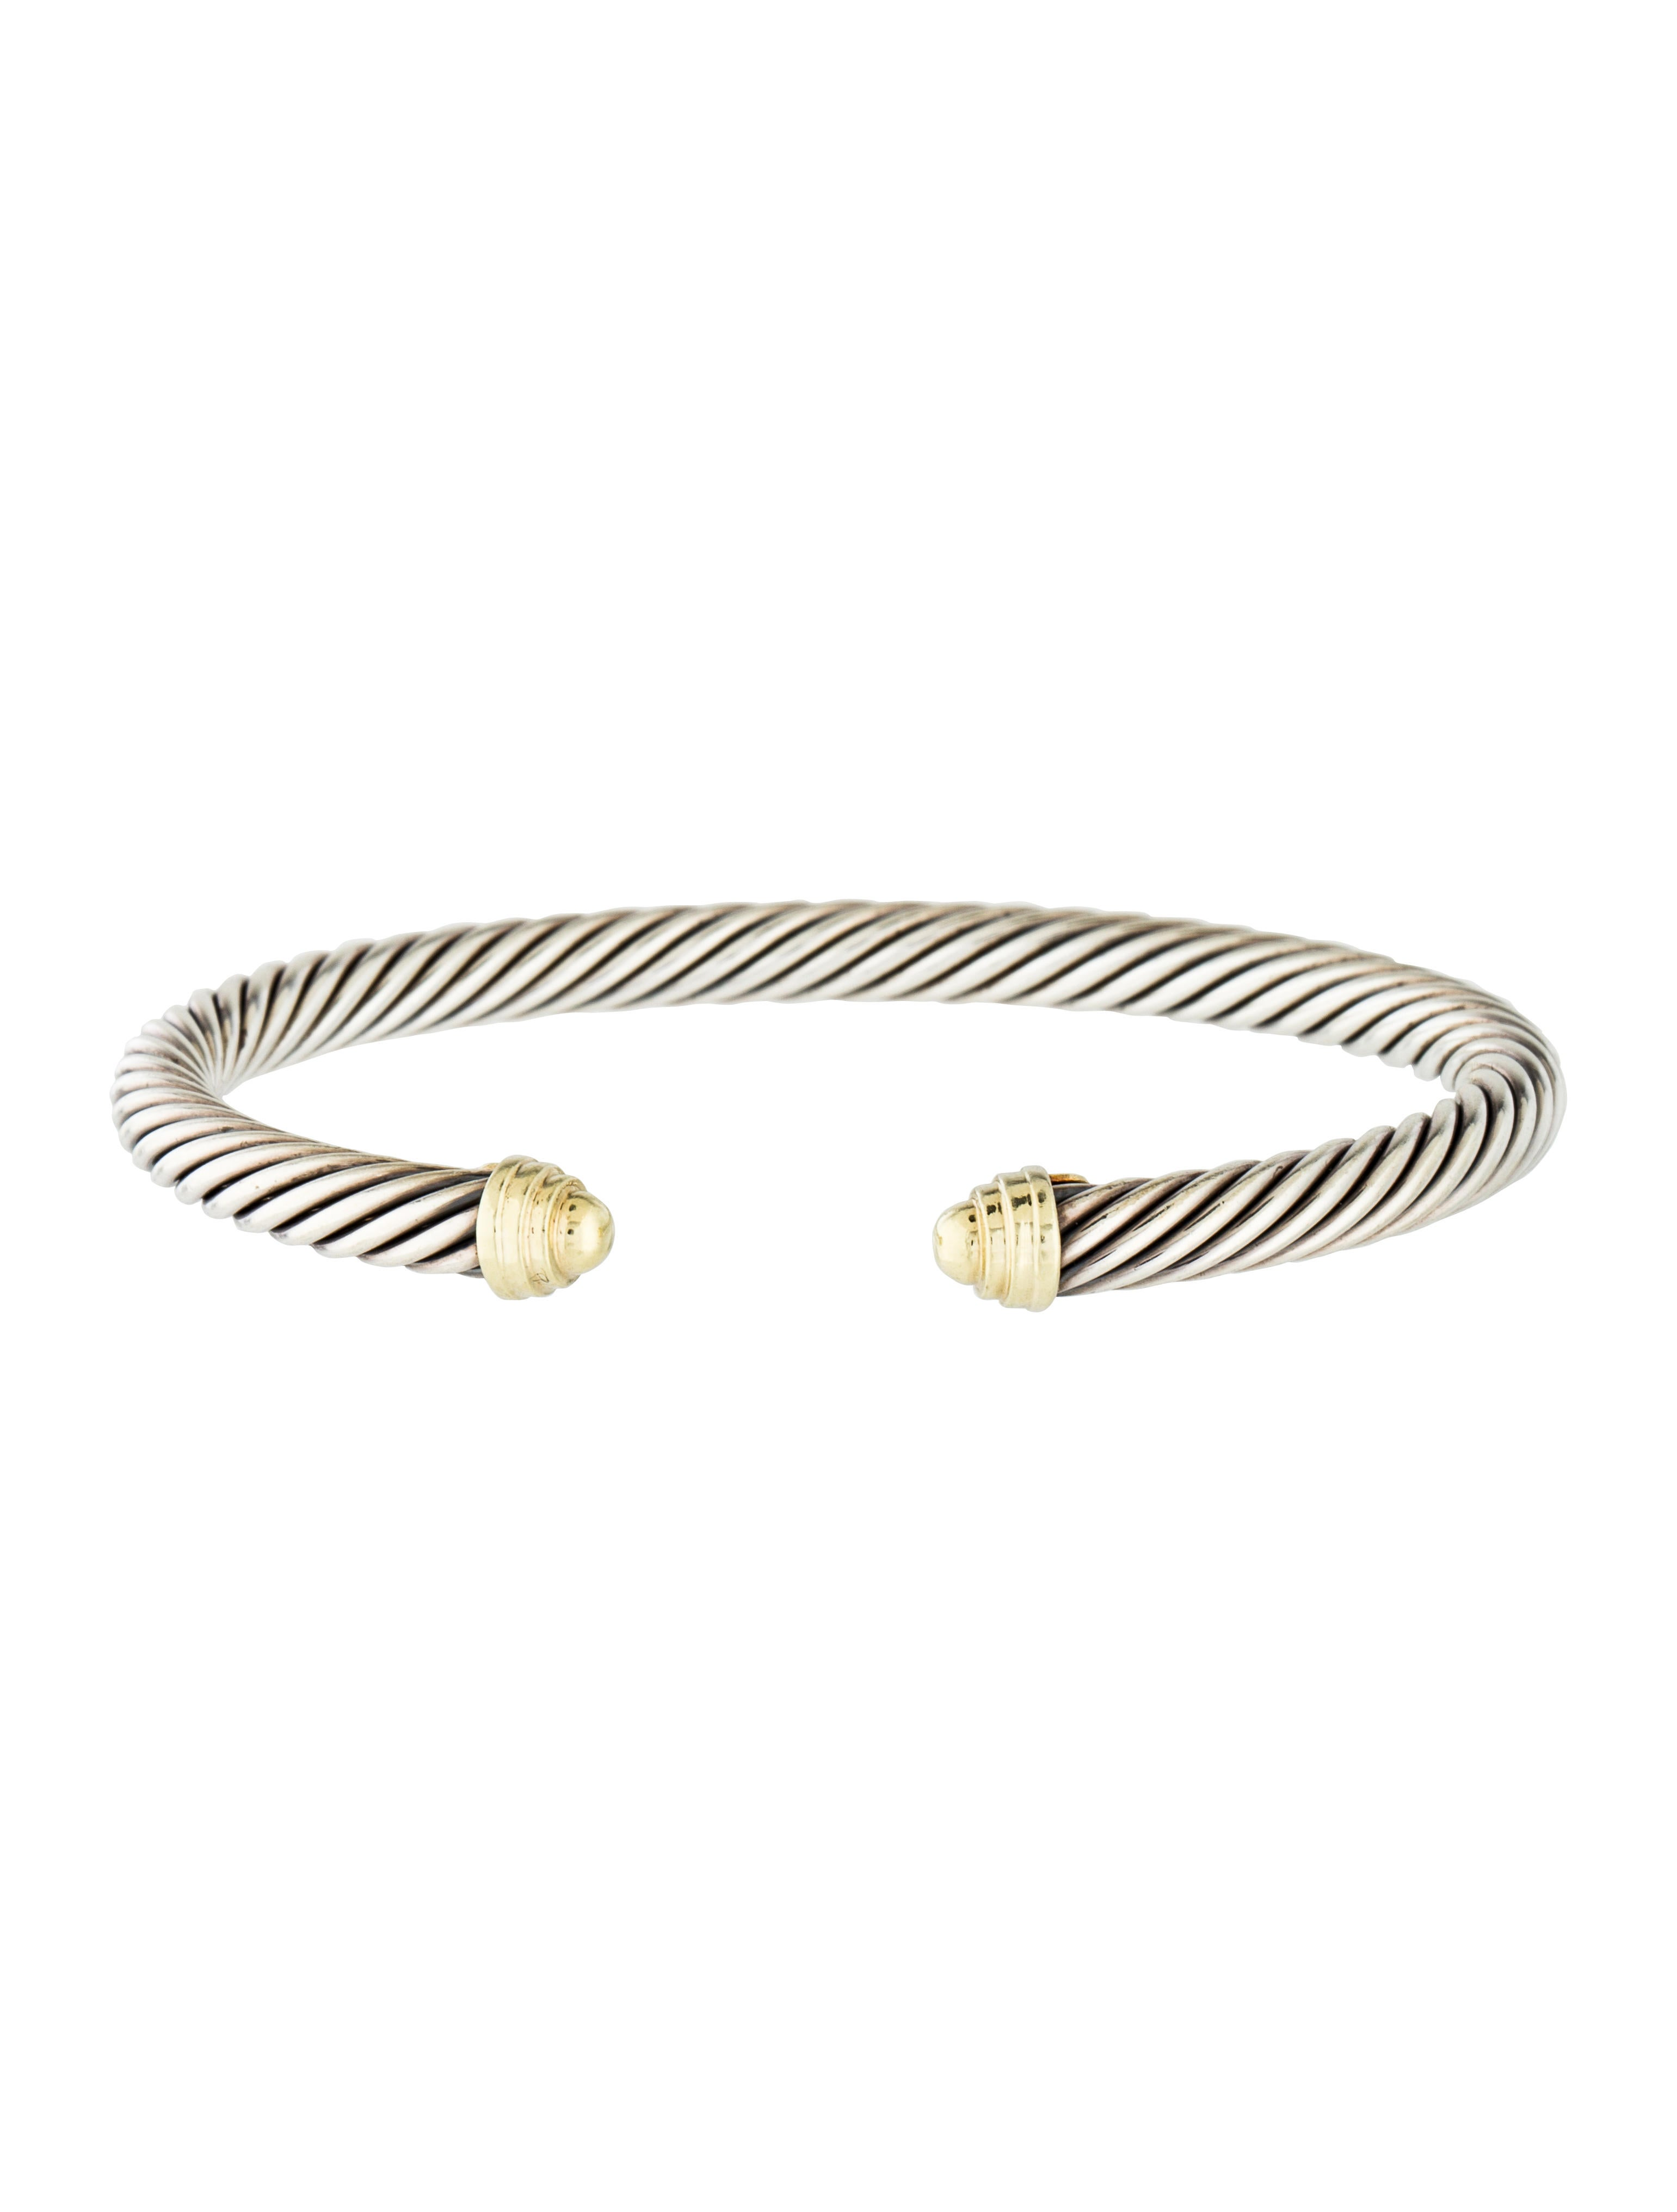 David yurman two tone cable classics bracelet bracelets for David yurman inspired bracelet cable